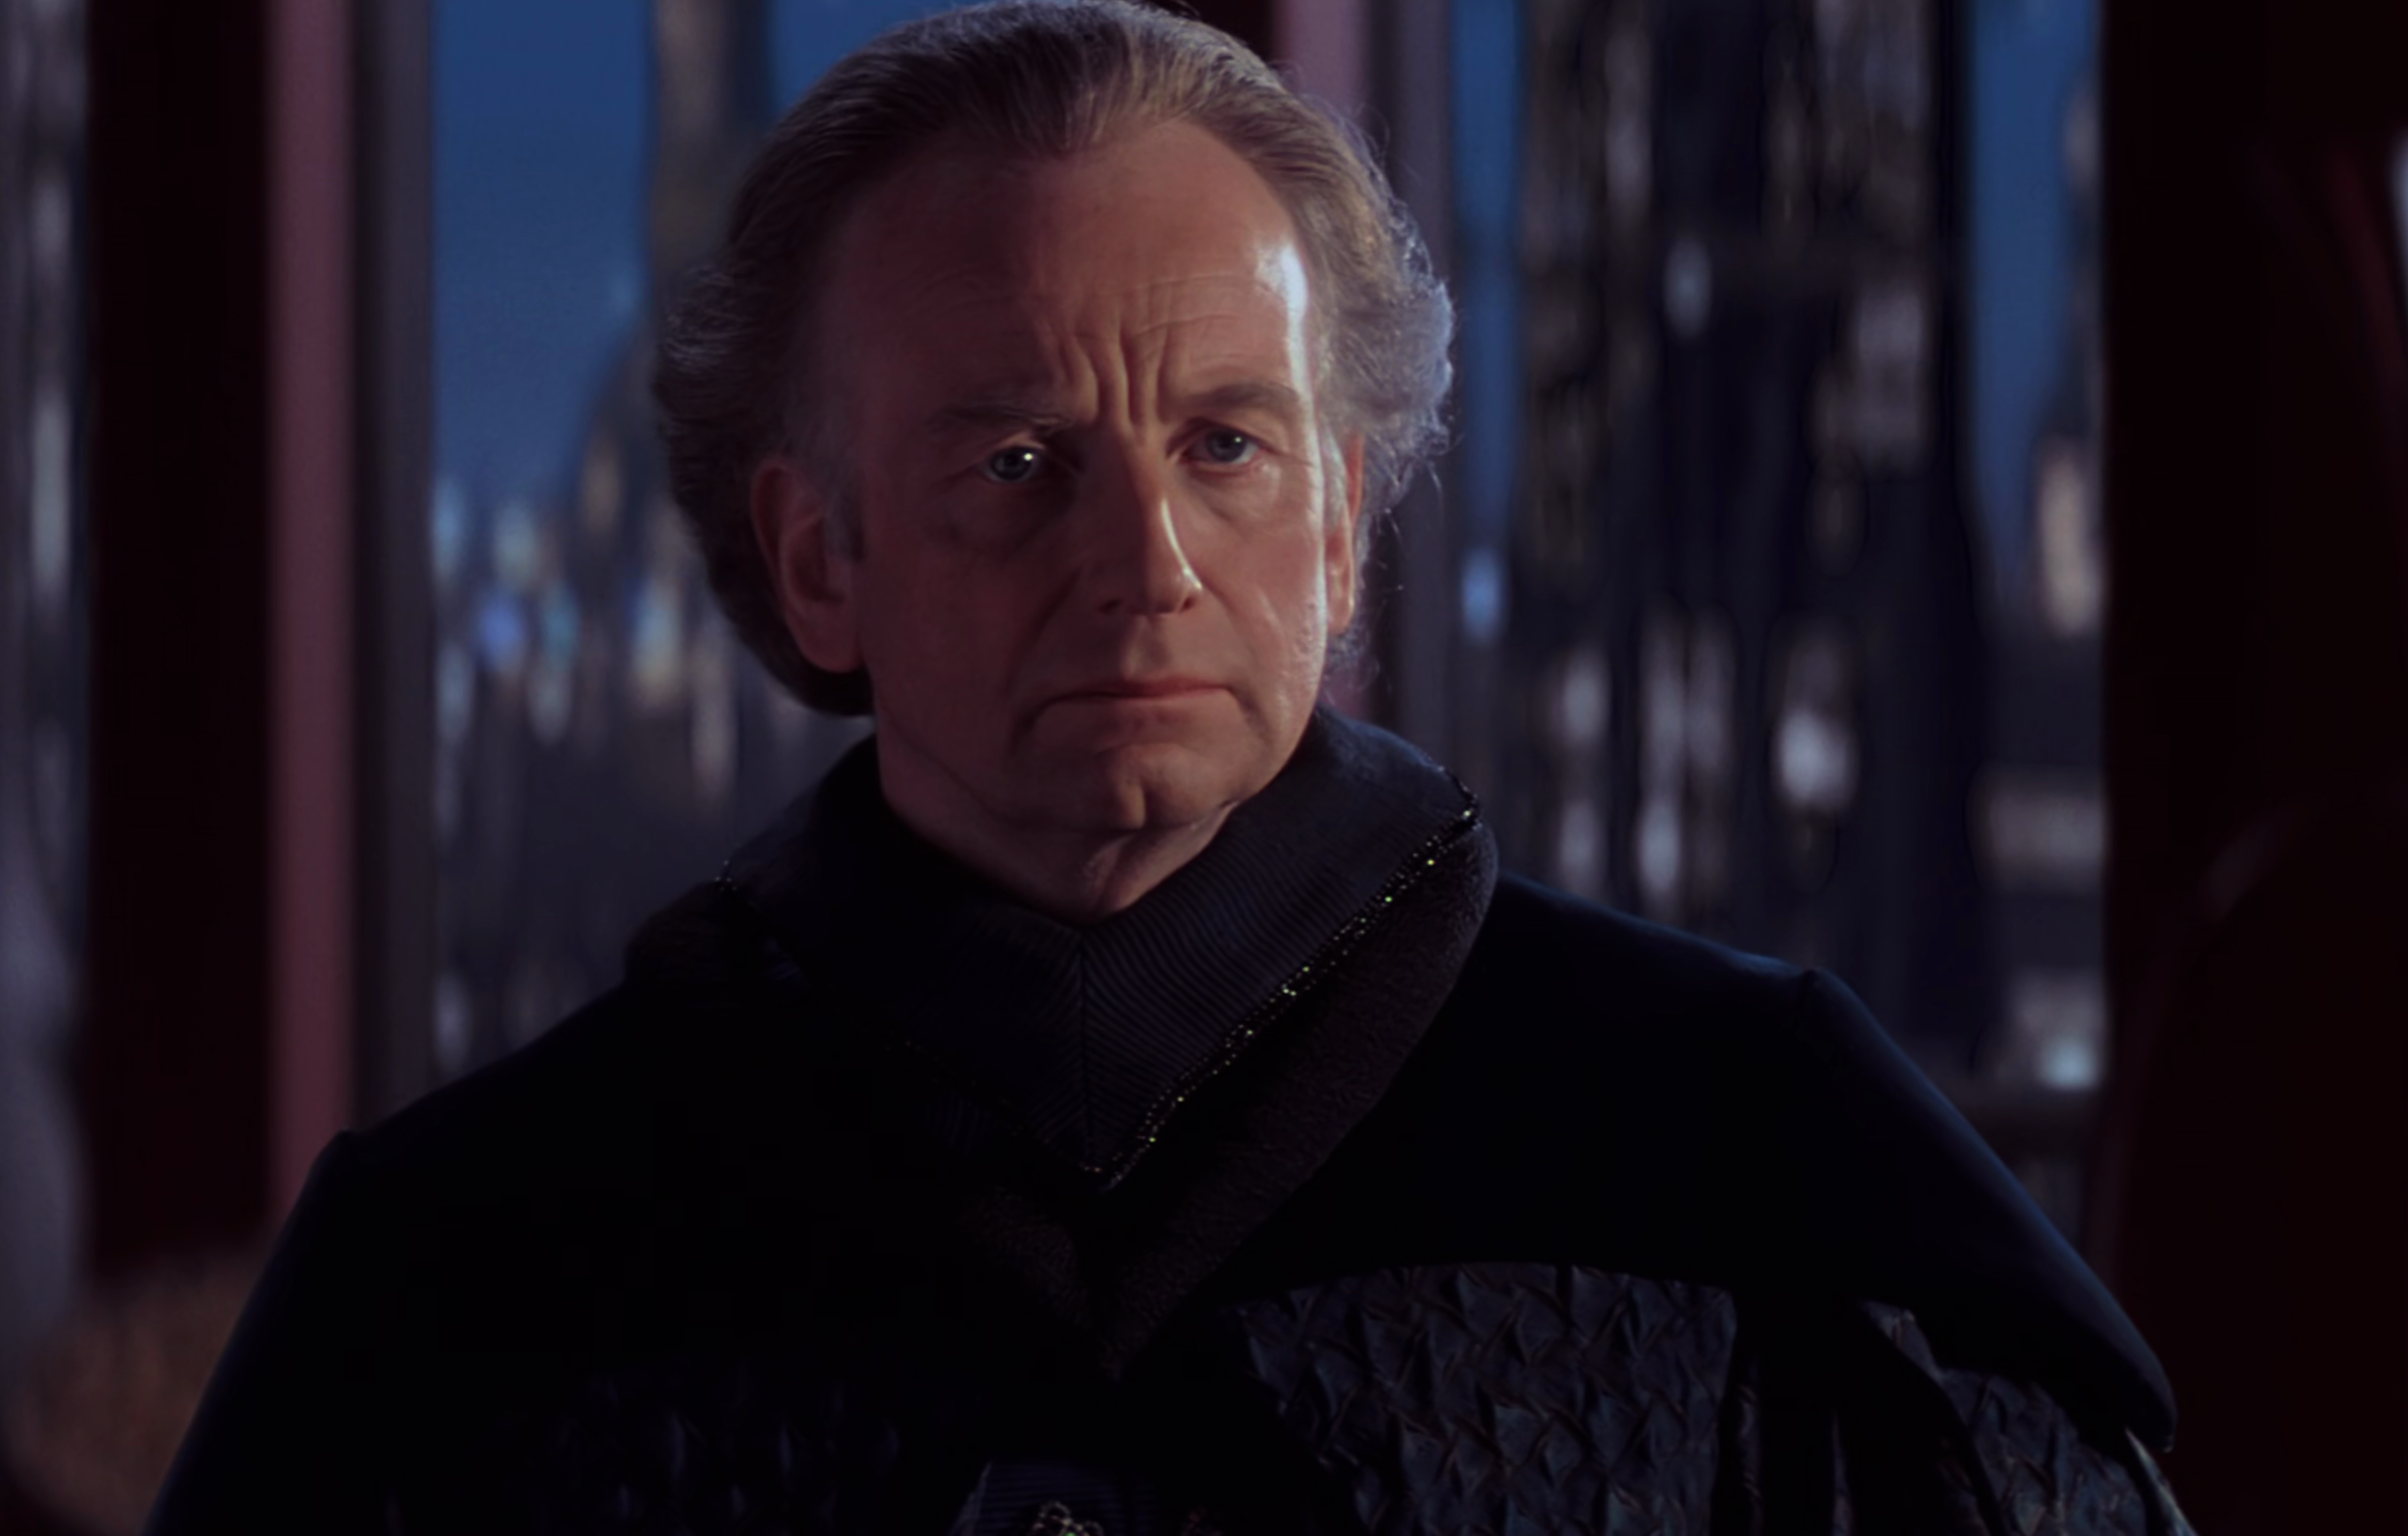 Darth Sidious | Wookieepedia | FANDOM powered by Wikia